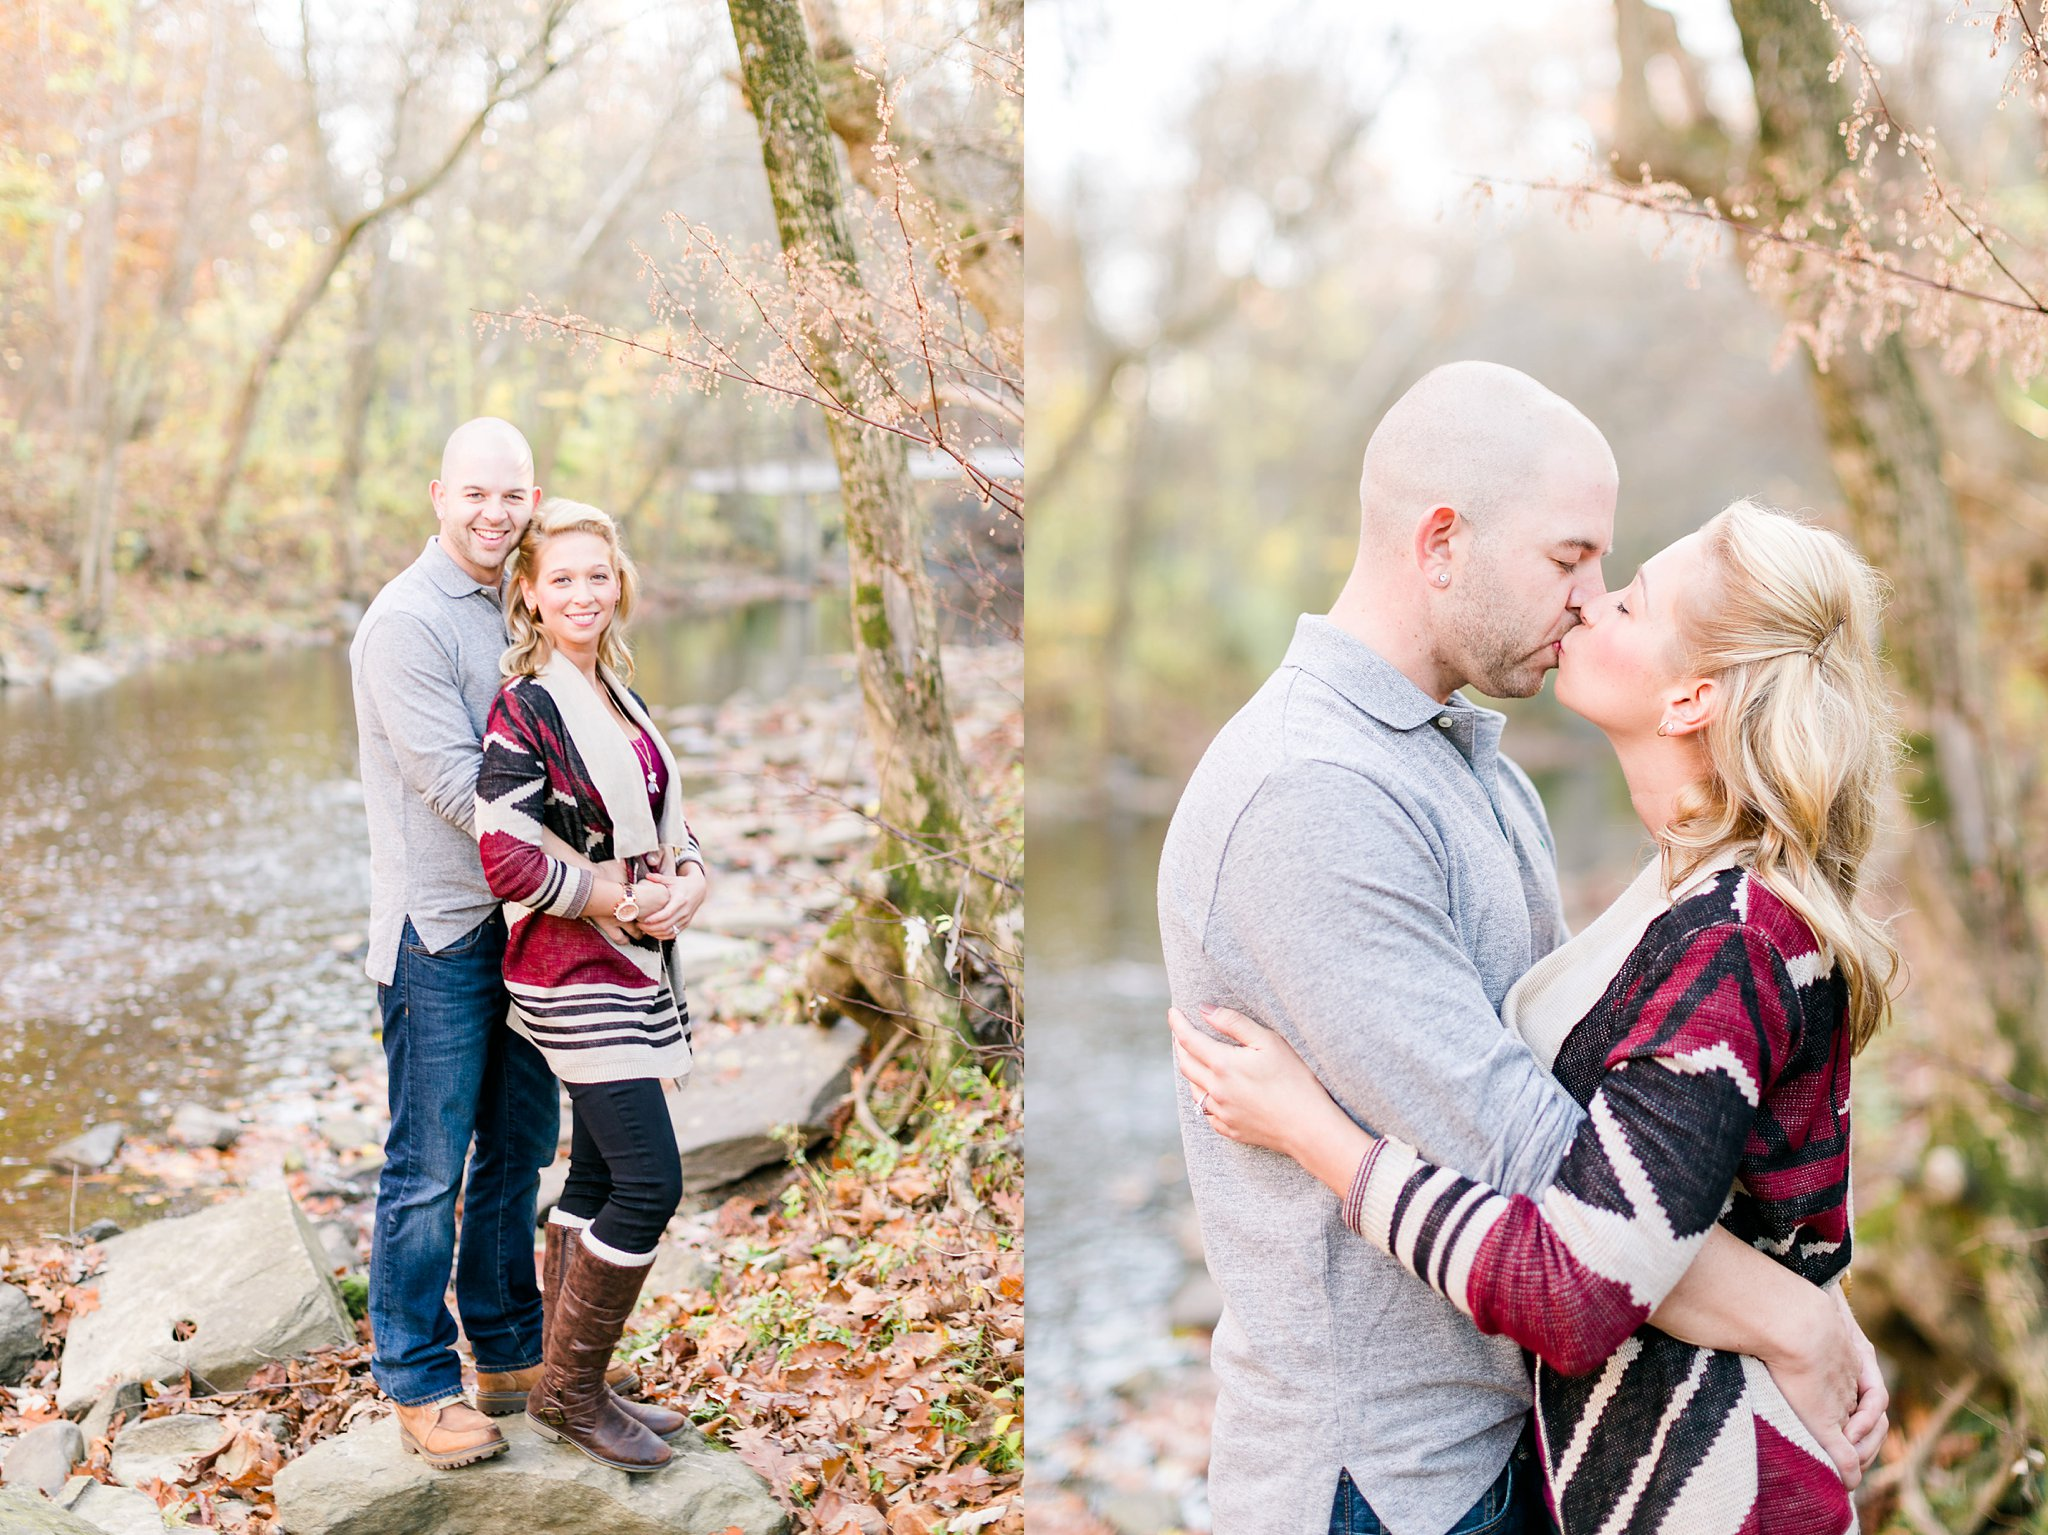 Rock Creek Park Engagement Photos DC Wedding Photographer Megan Kelsey Photography Katie & Conor-64.jpg